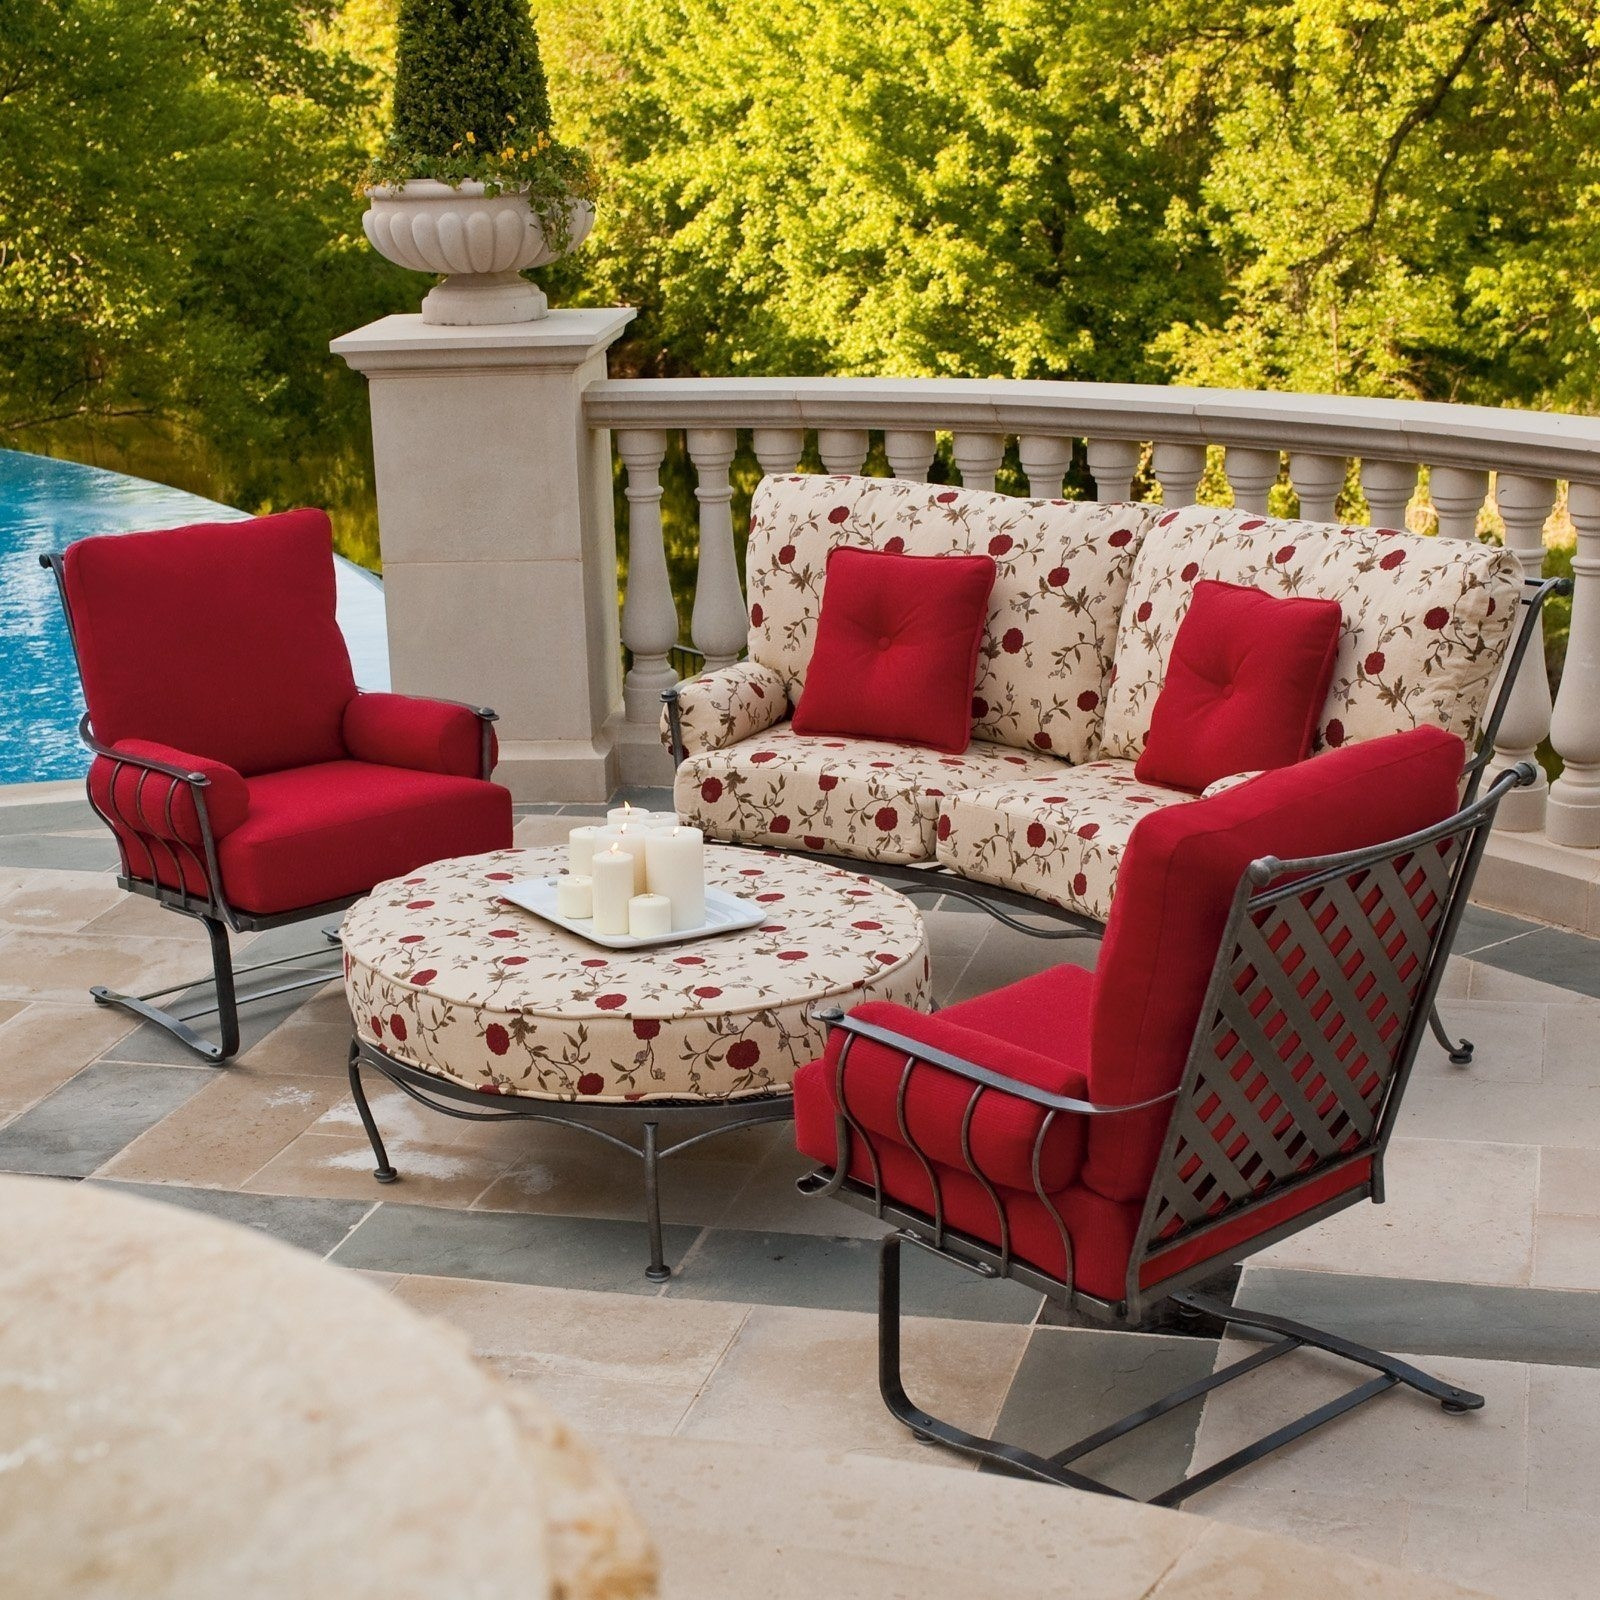 Best ideas about Patio Furniture Deals . Save or Pin Best Deal Patio Furniture 81 With Best Deal Patio Now.